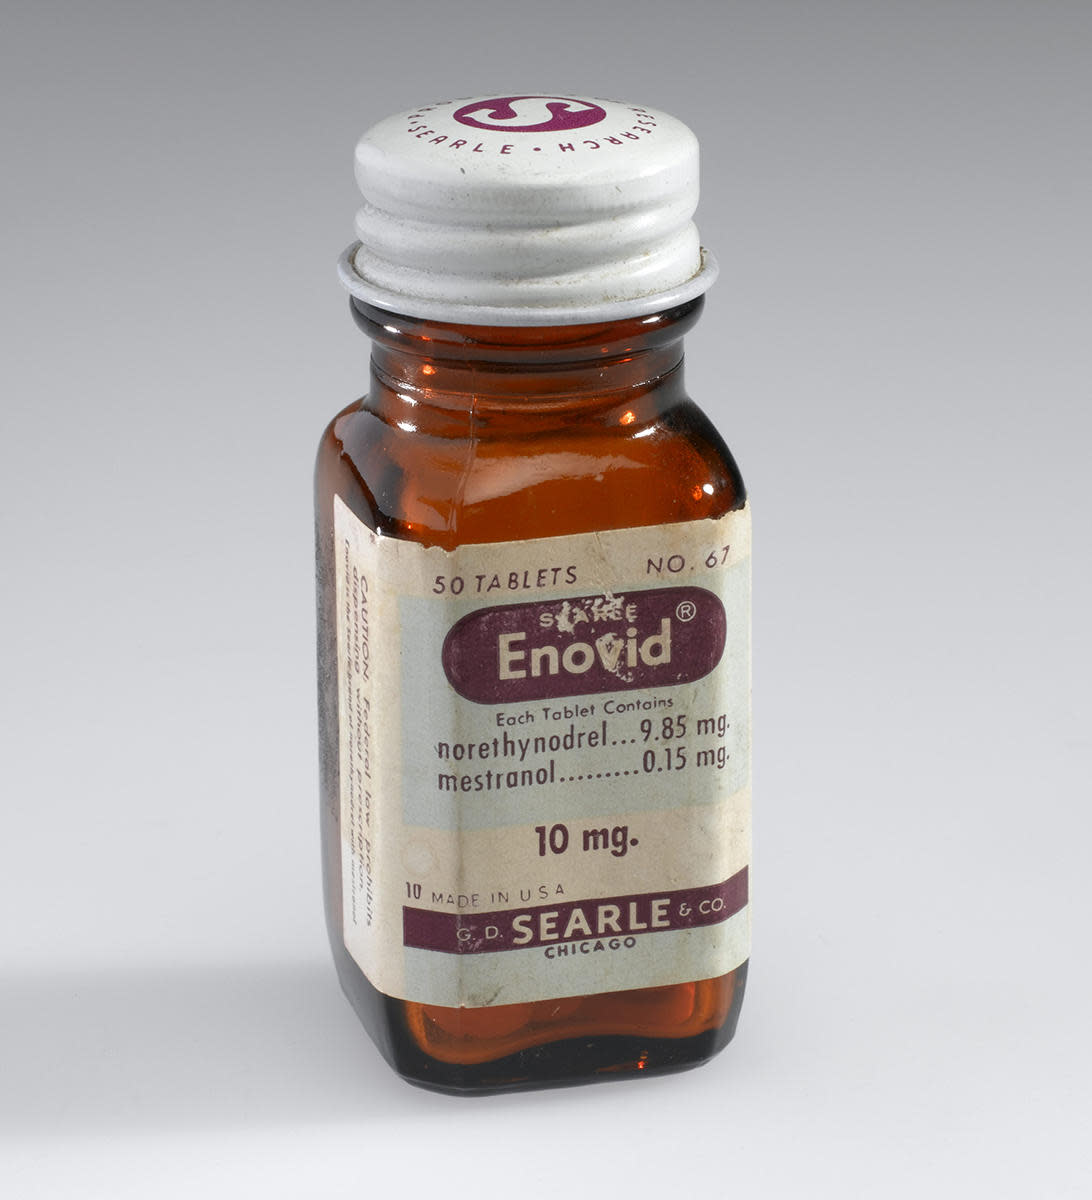 A bottle of Enovid tabs from the early 1960s. (Credit: Science Museum/SSPL/Getty Images)